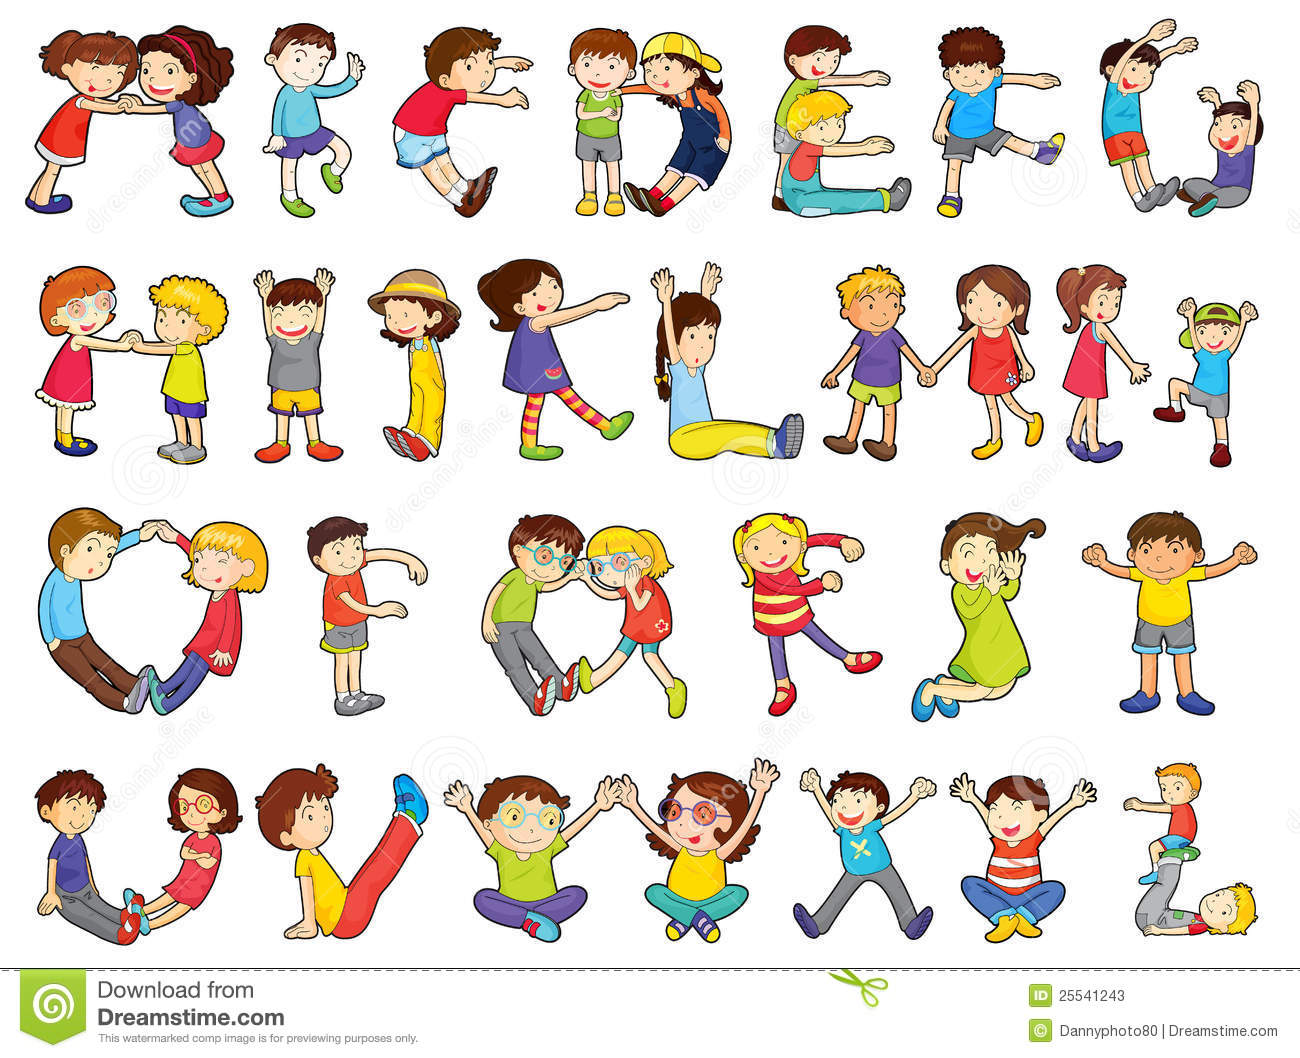 Stock Photos Alphabets Kids Activities Image25541243 on Letter Z Crafts